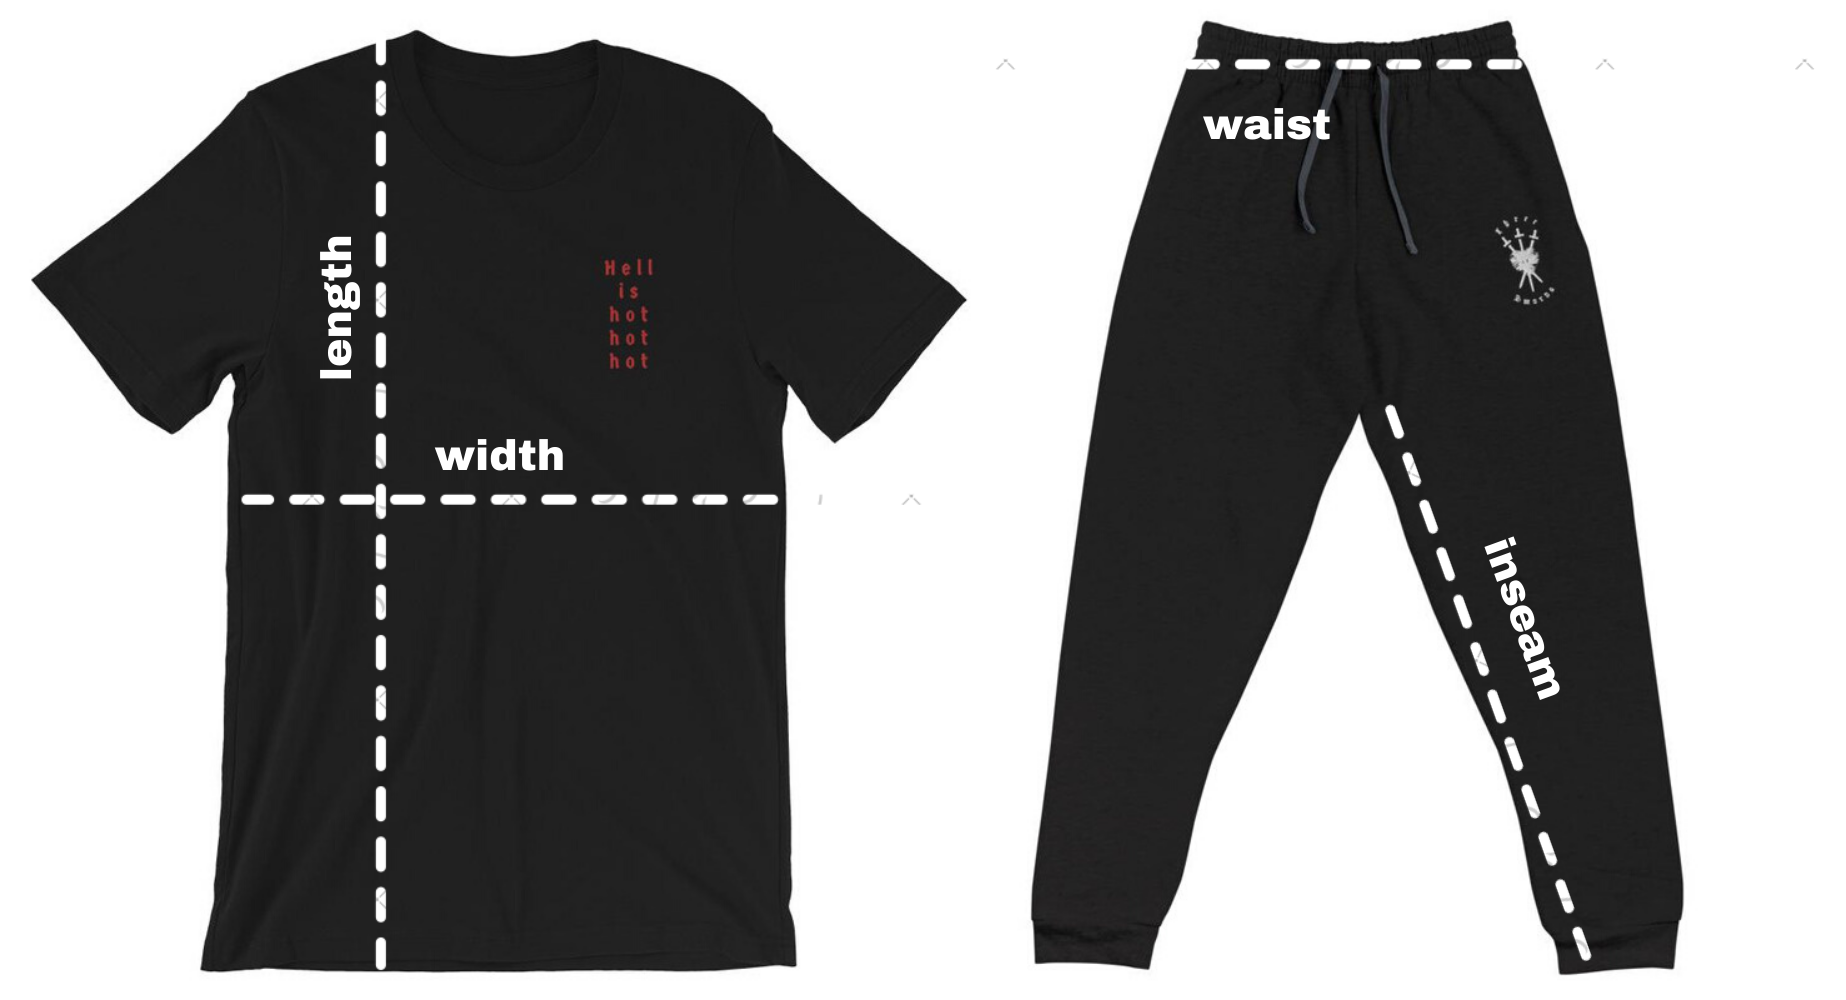 Two items from Three of Swords' Collection 1: Southern Gothic, a black tee and a pair of black joggers. Both have white dotted lines across them to show customers how to measure clothes for an ideal fit.